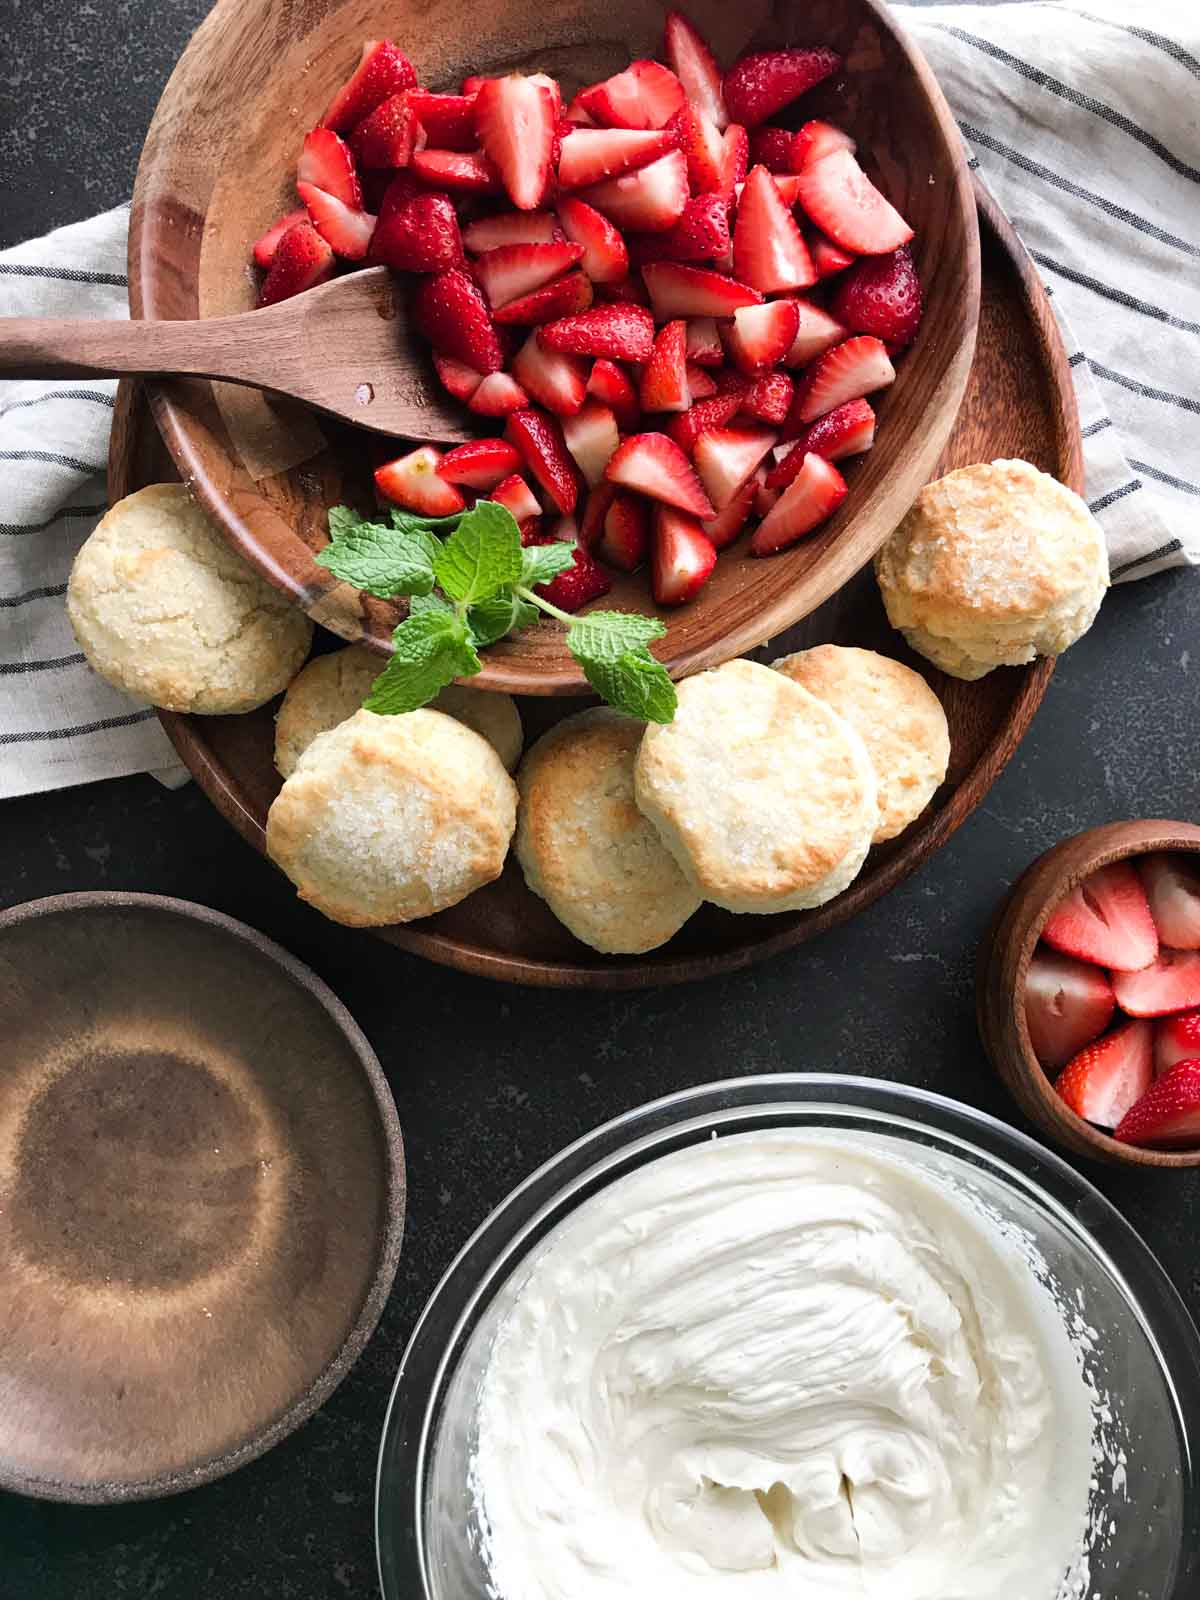 All the ingredients for the Homemade Strawberry Shortcakes ready to be assembled - a bowl of strawberries sitting on a plate with buttermilk biscuits and a bowl of whipped cream.